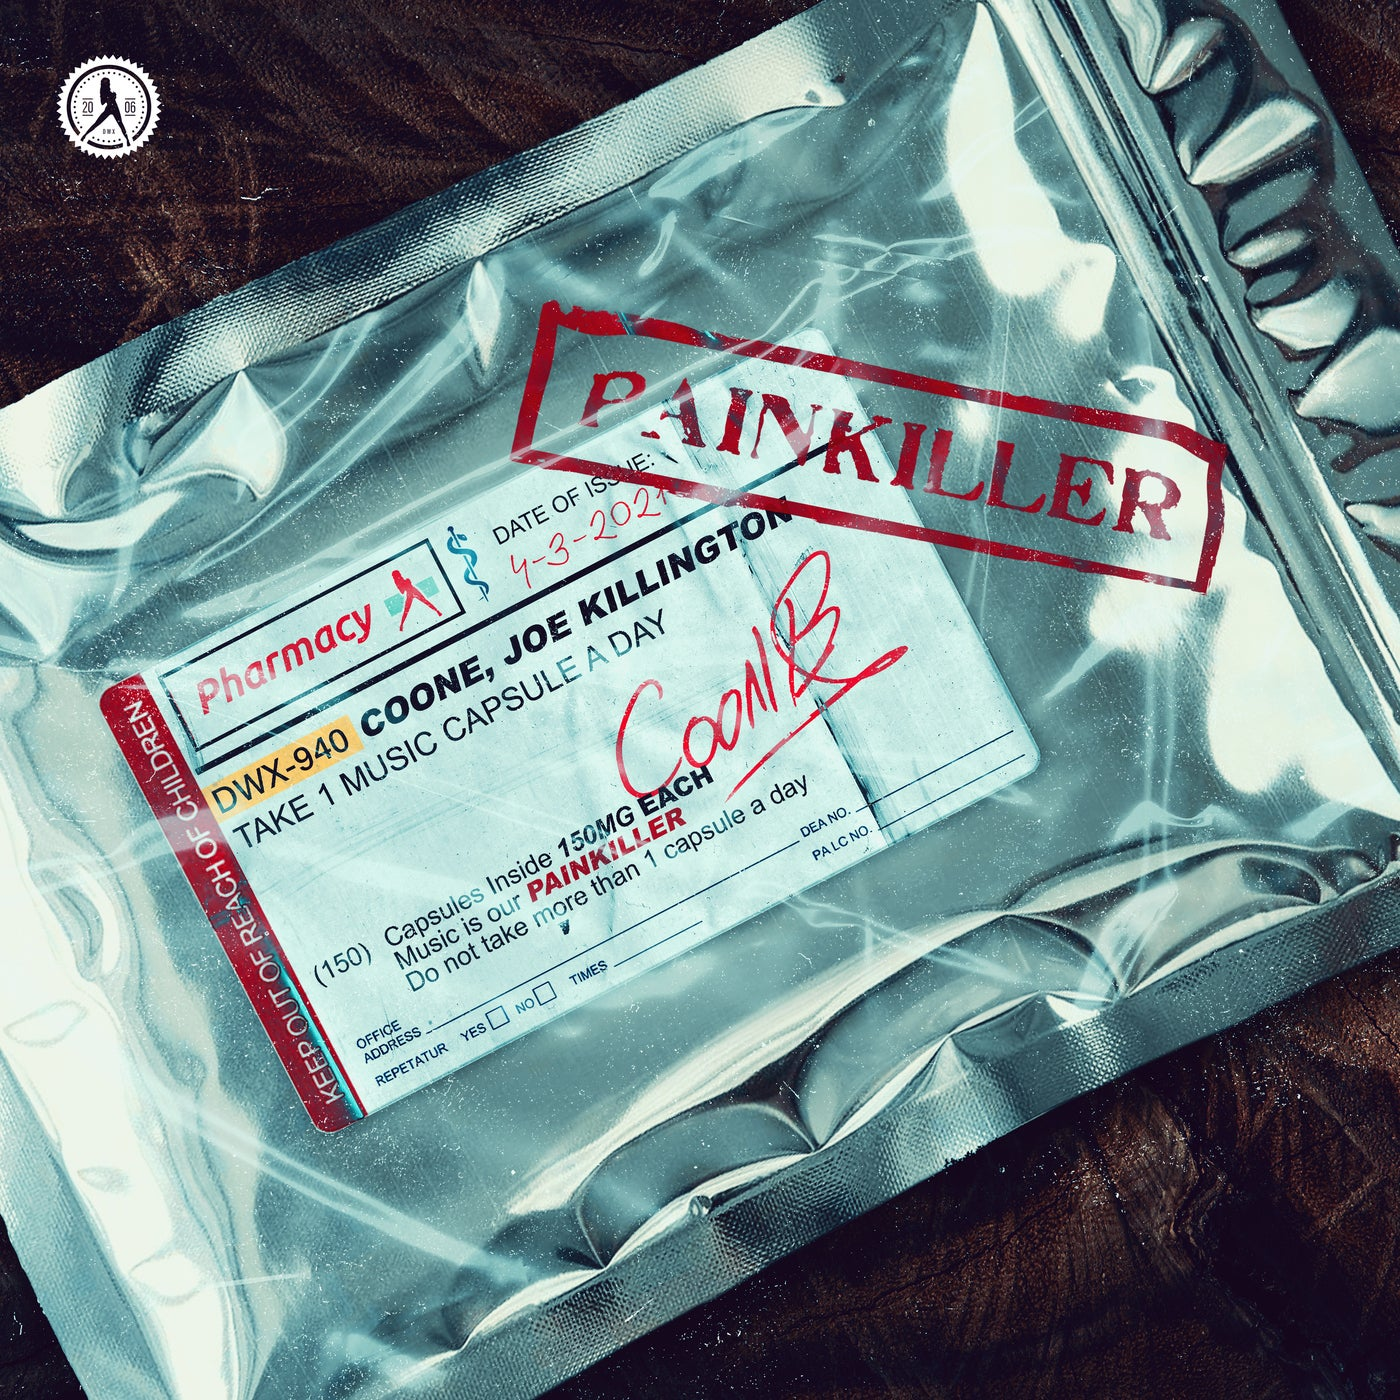 Painkiller (Extended Mix)